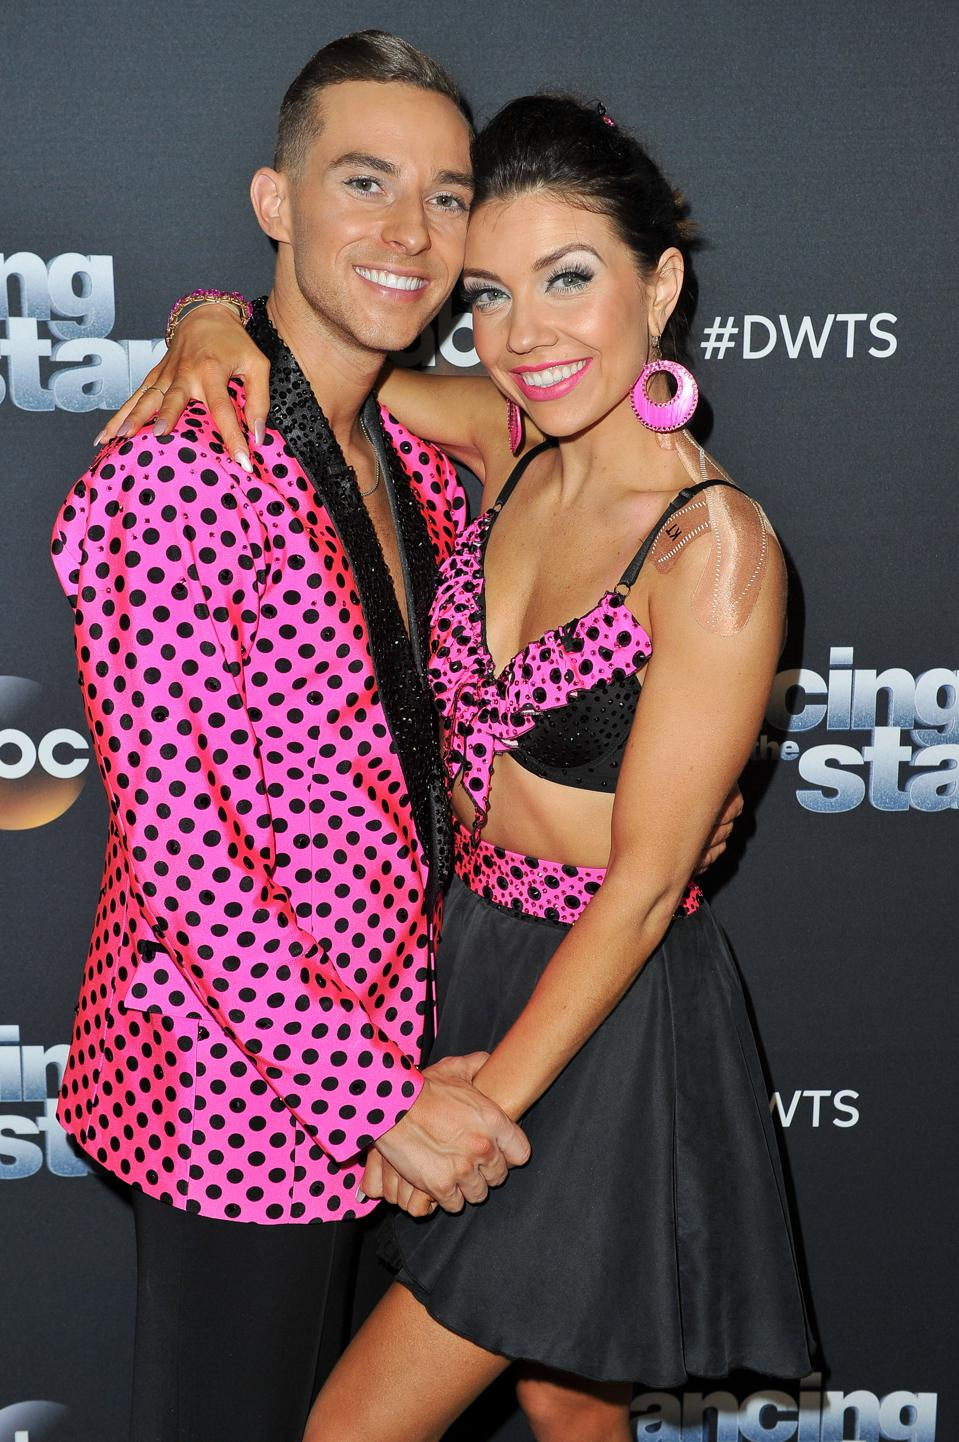 ABC's ″Dancing With The Stars: Athletes″ Season 26 - May 14, 2018 - Arrivals